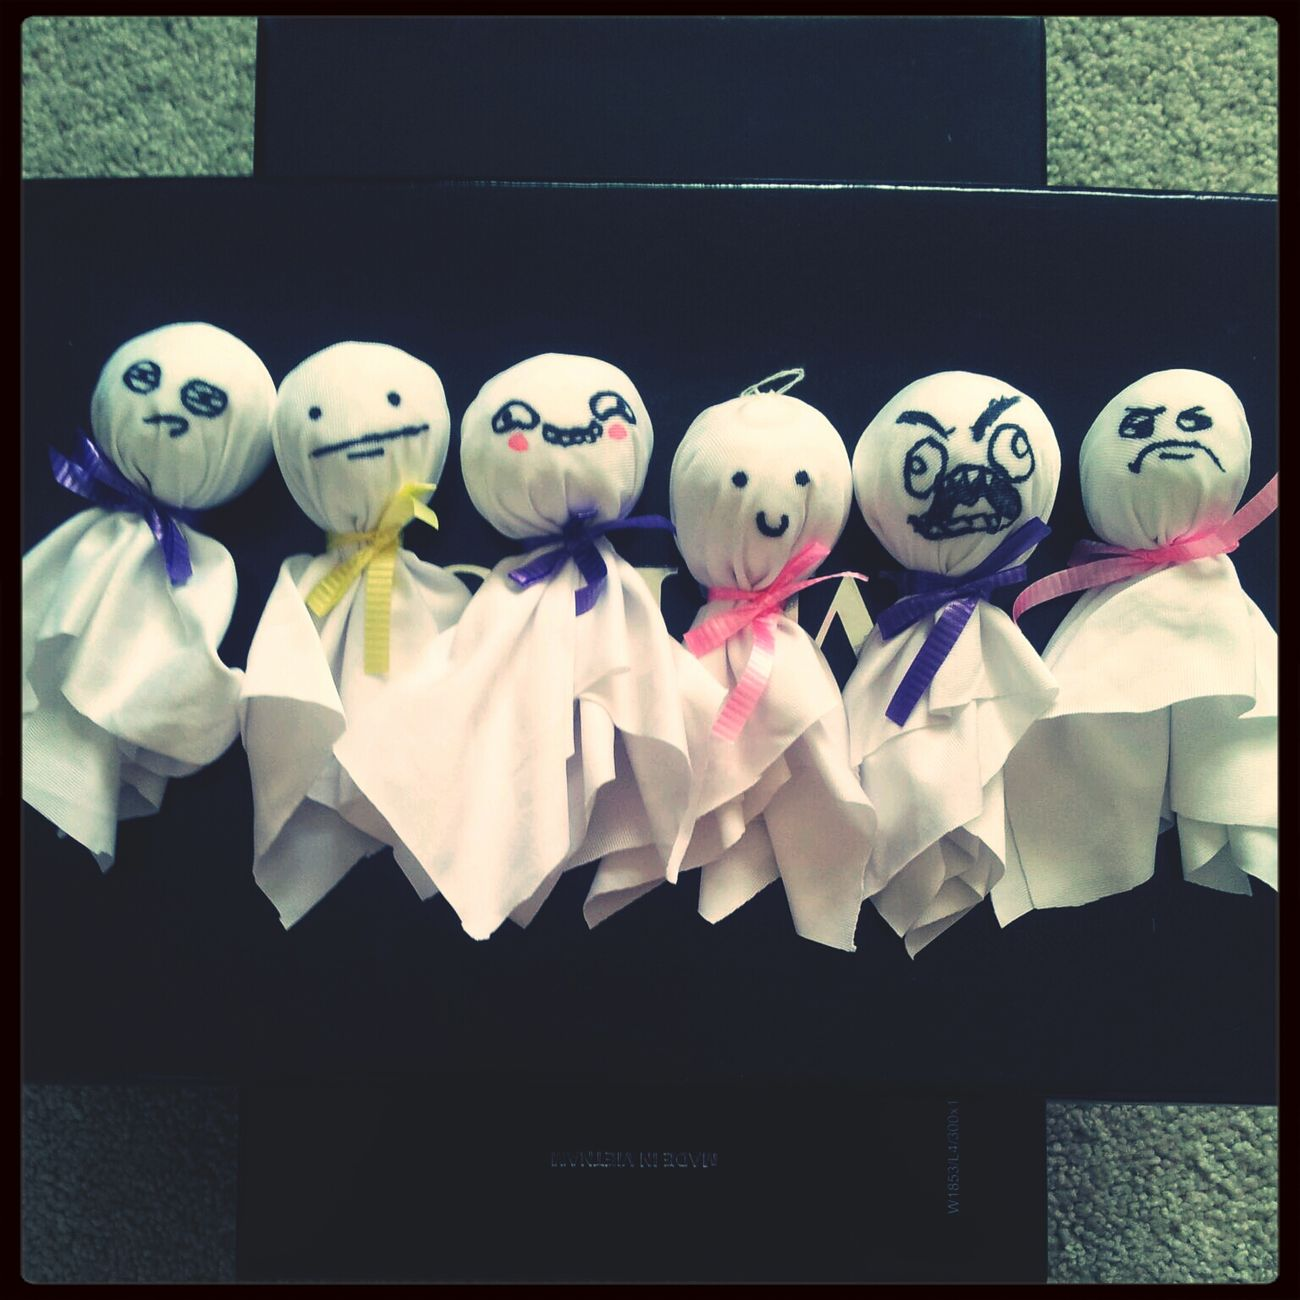 Meme faced rain dolls ♡ Memedolls Memefaces Challenge Accepted Rageface